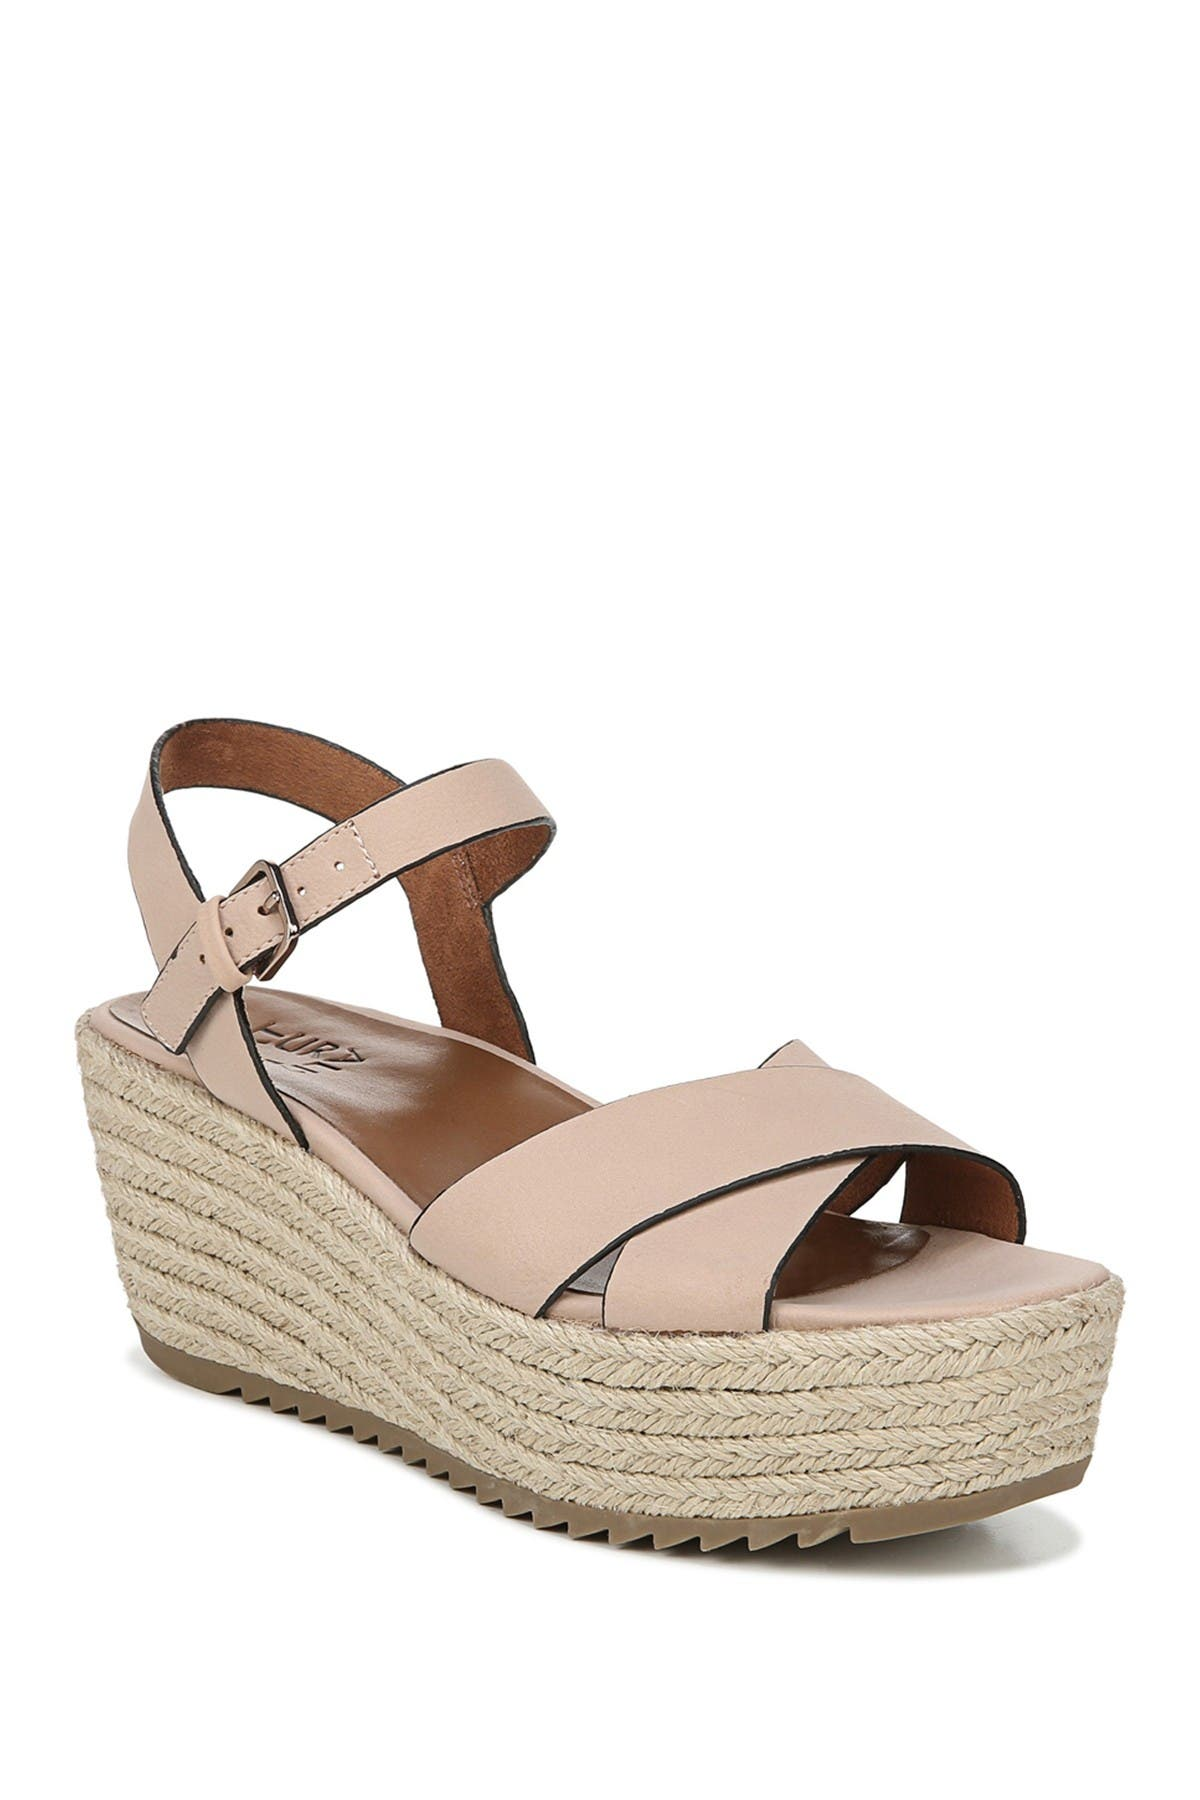 Naturalizer | Oceanna Ankle Strap Wedge